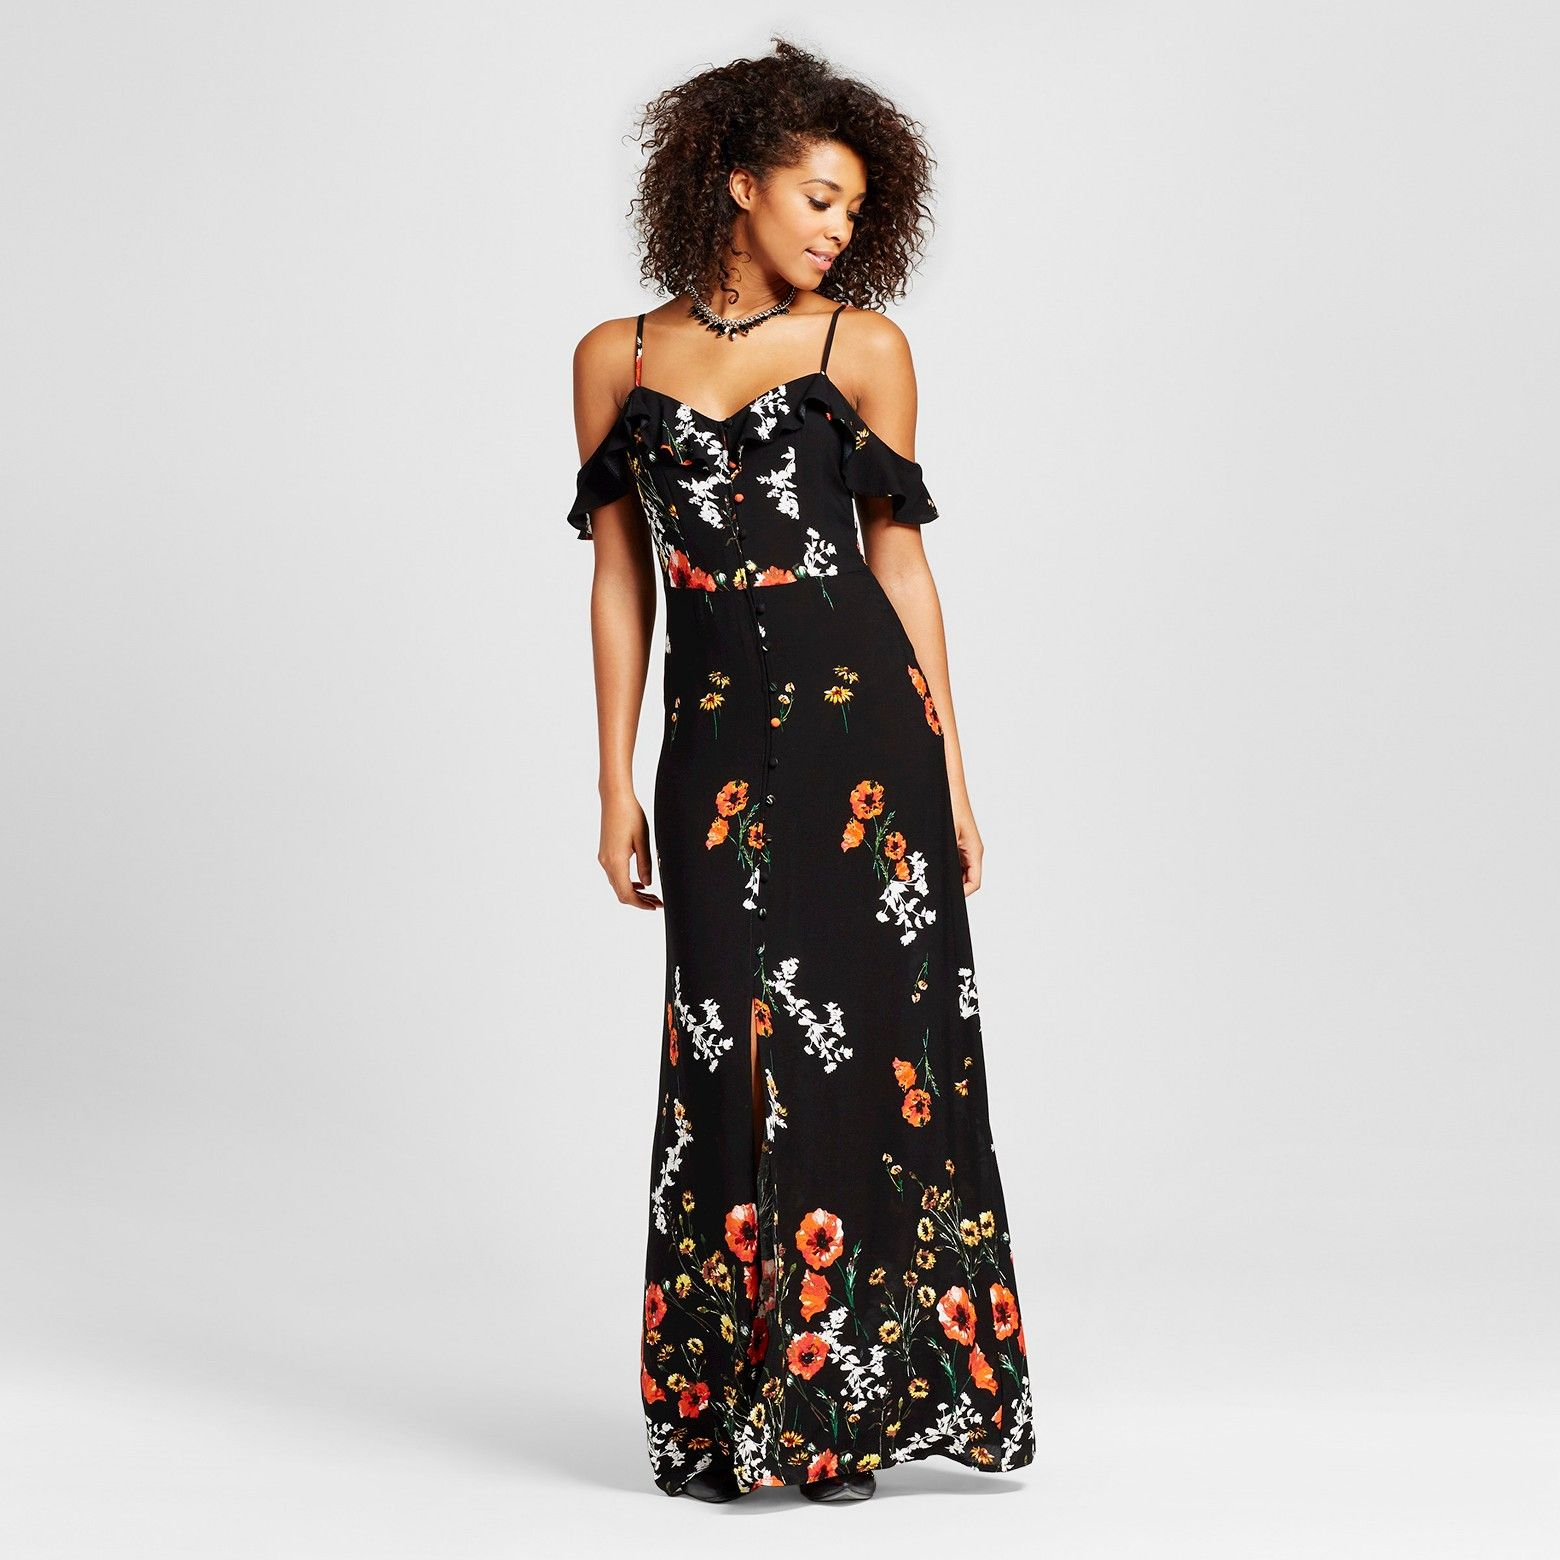 4b4f66a97b2d The Women s Cold-Shoulder Maxi Dress in Black by Xhilaration (Juniors ) is a  perfect pairing of a flirty shoulder and a dramatic